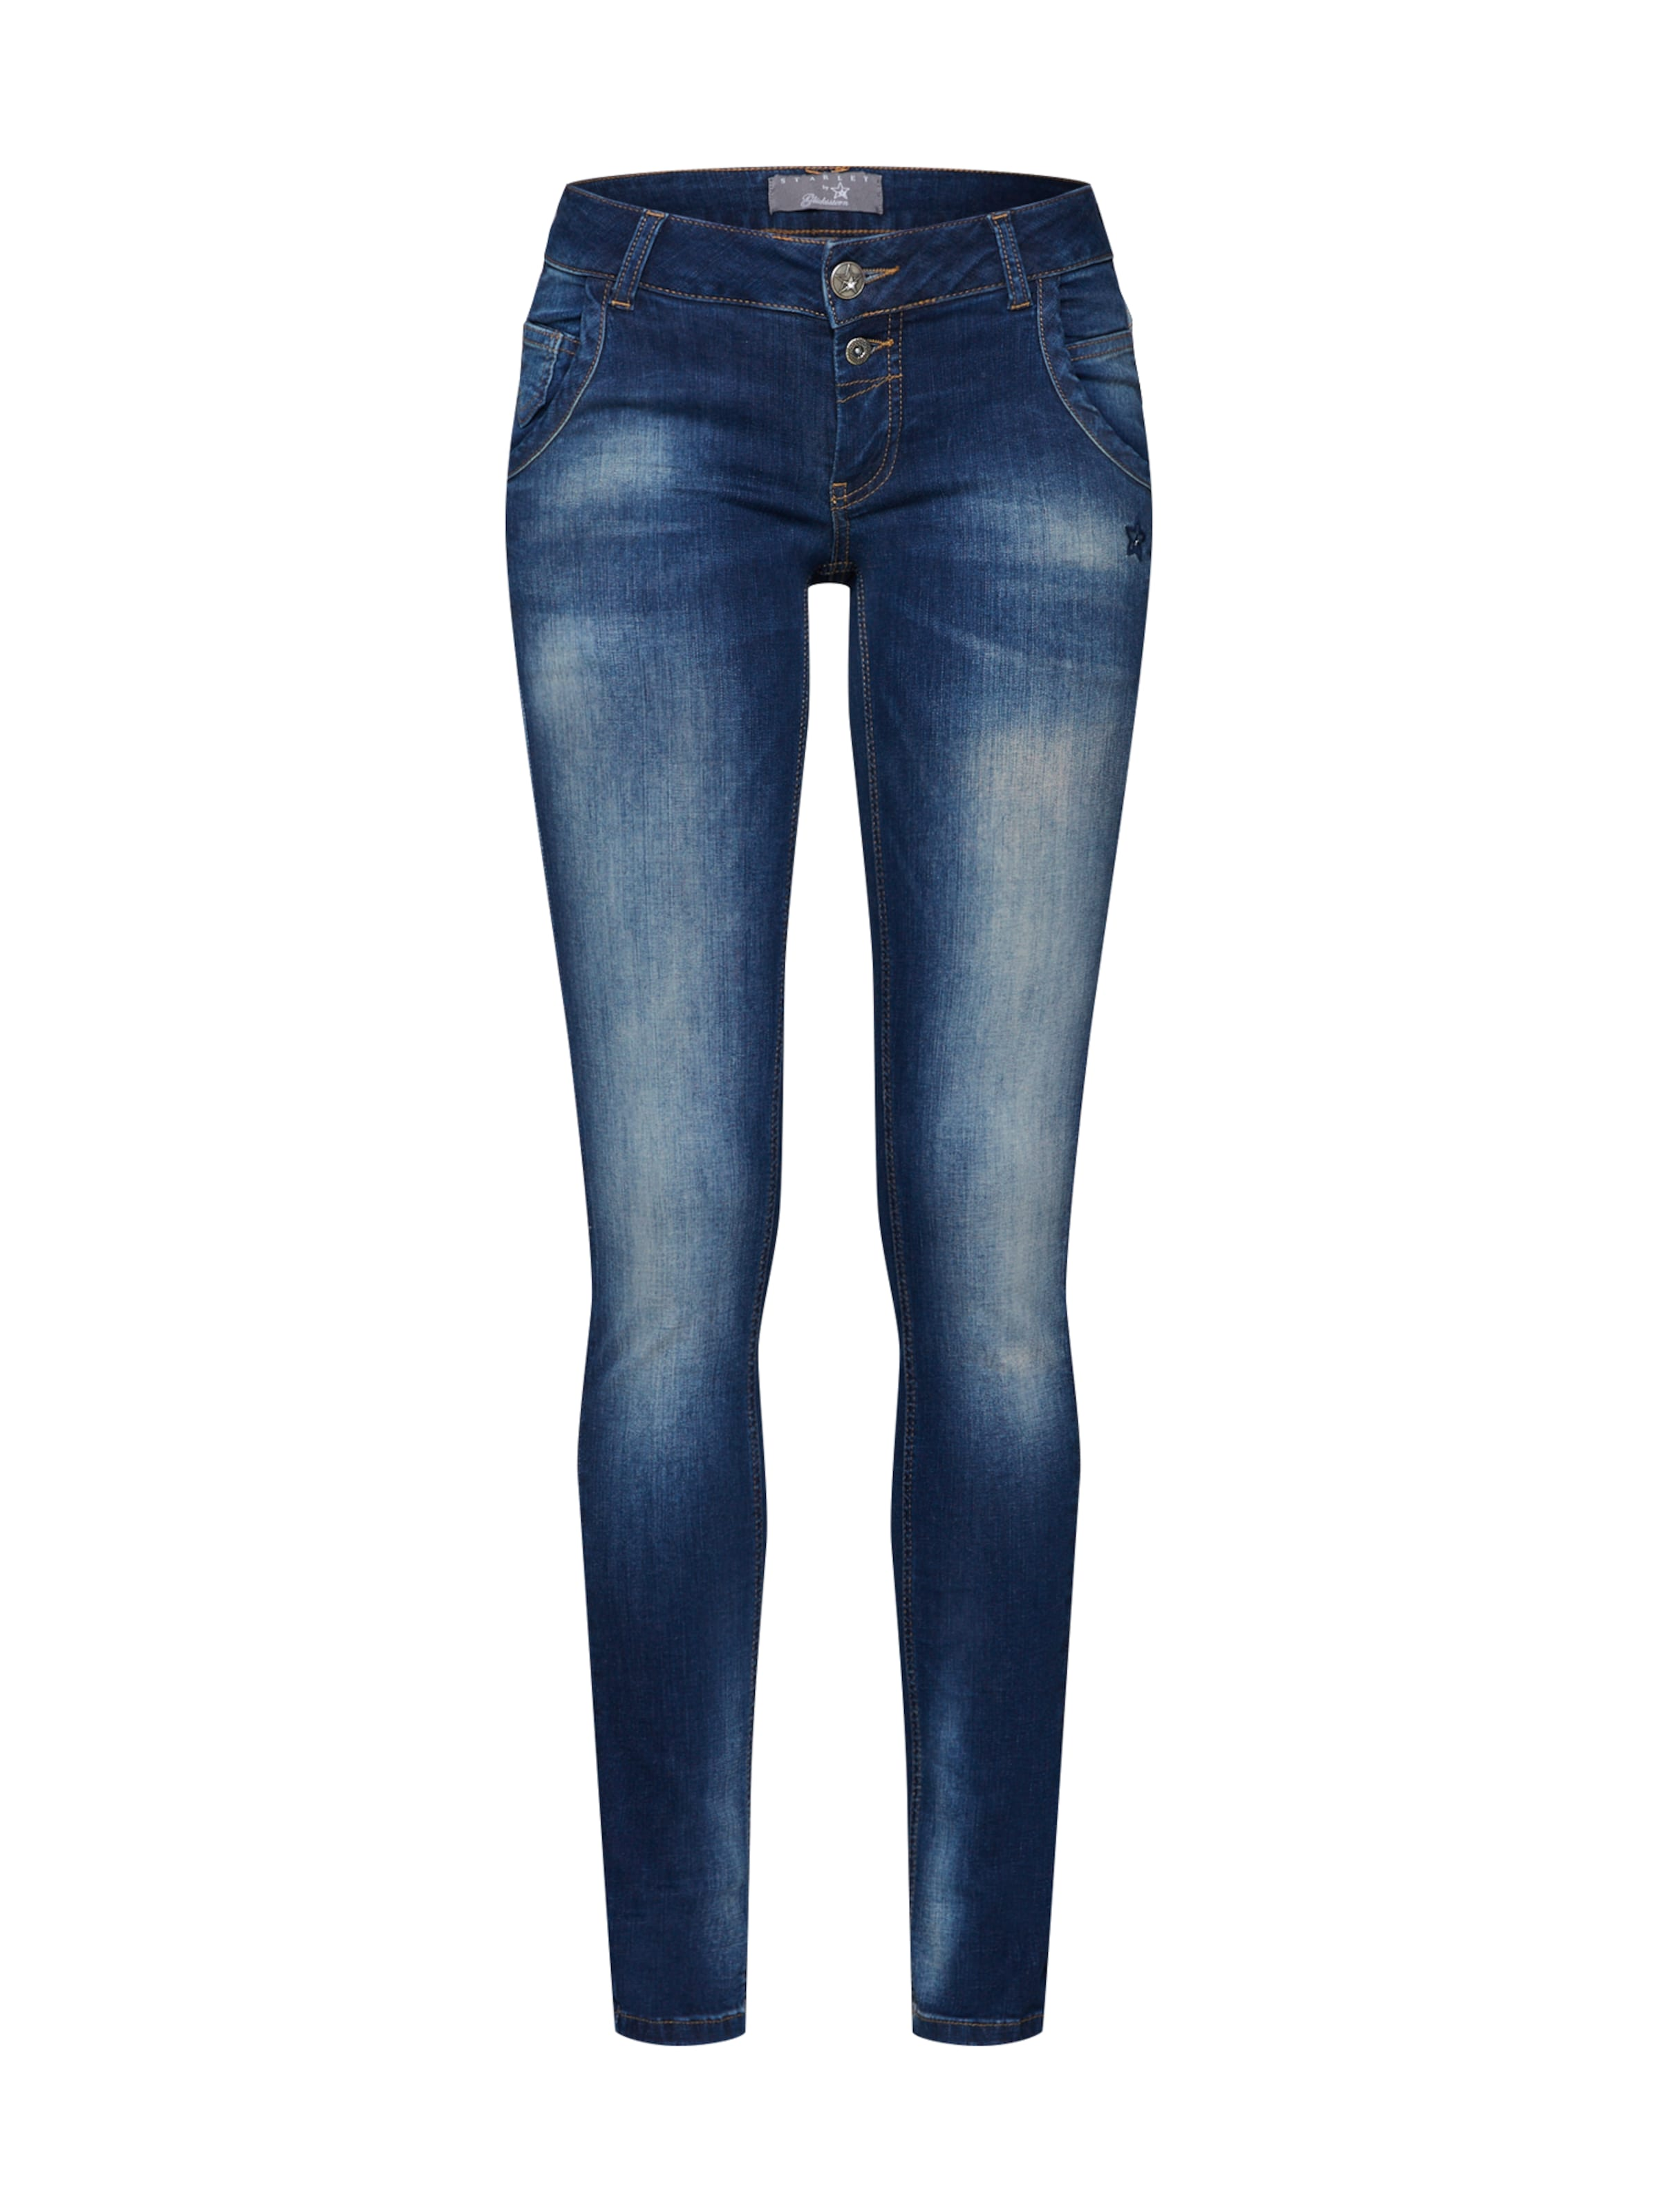 Jeans Denim 'pia' Glücksstern In Blue DH9E2IYW